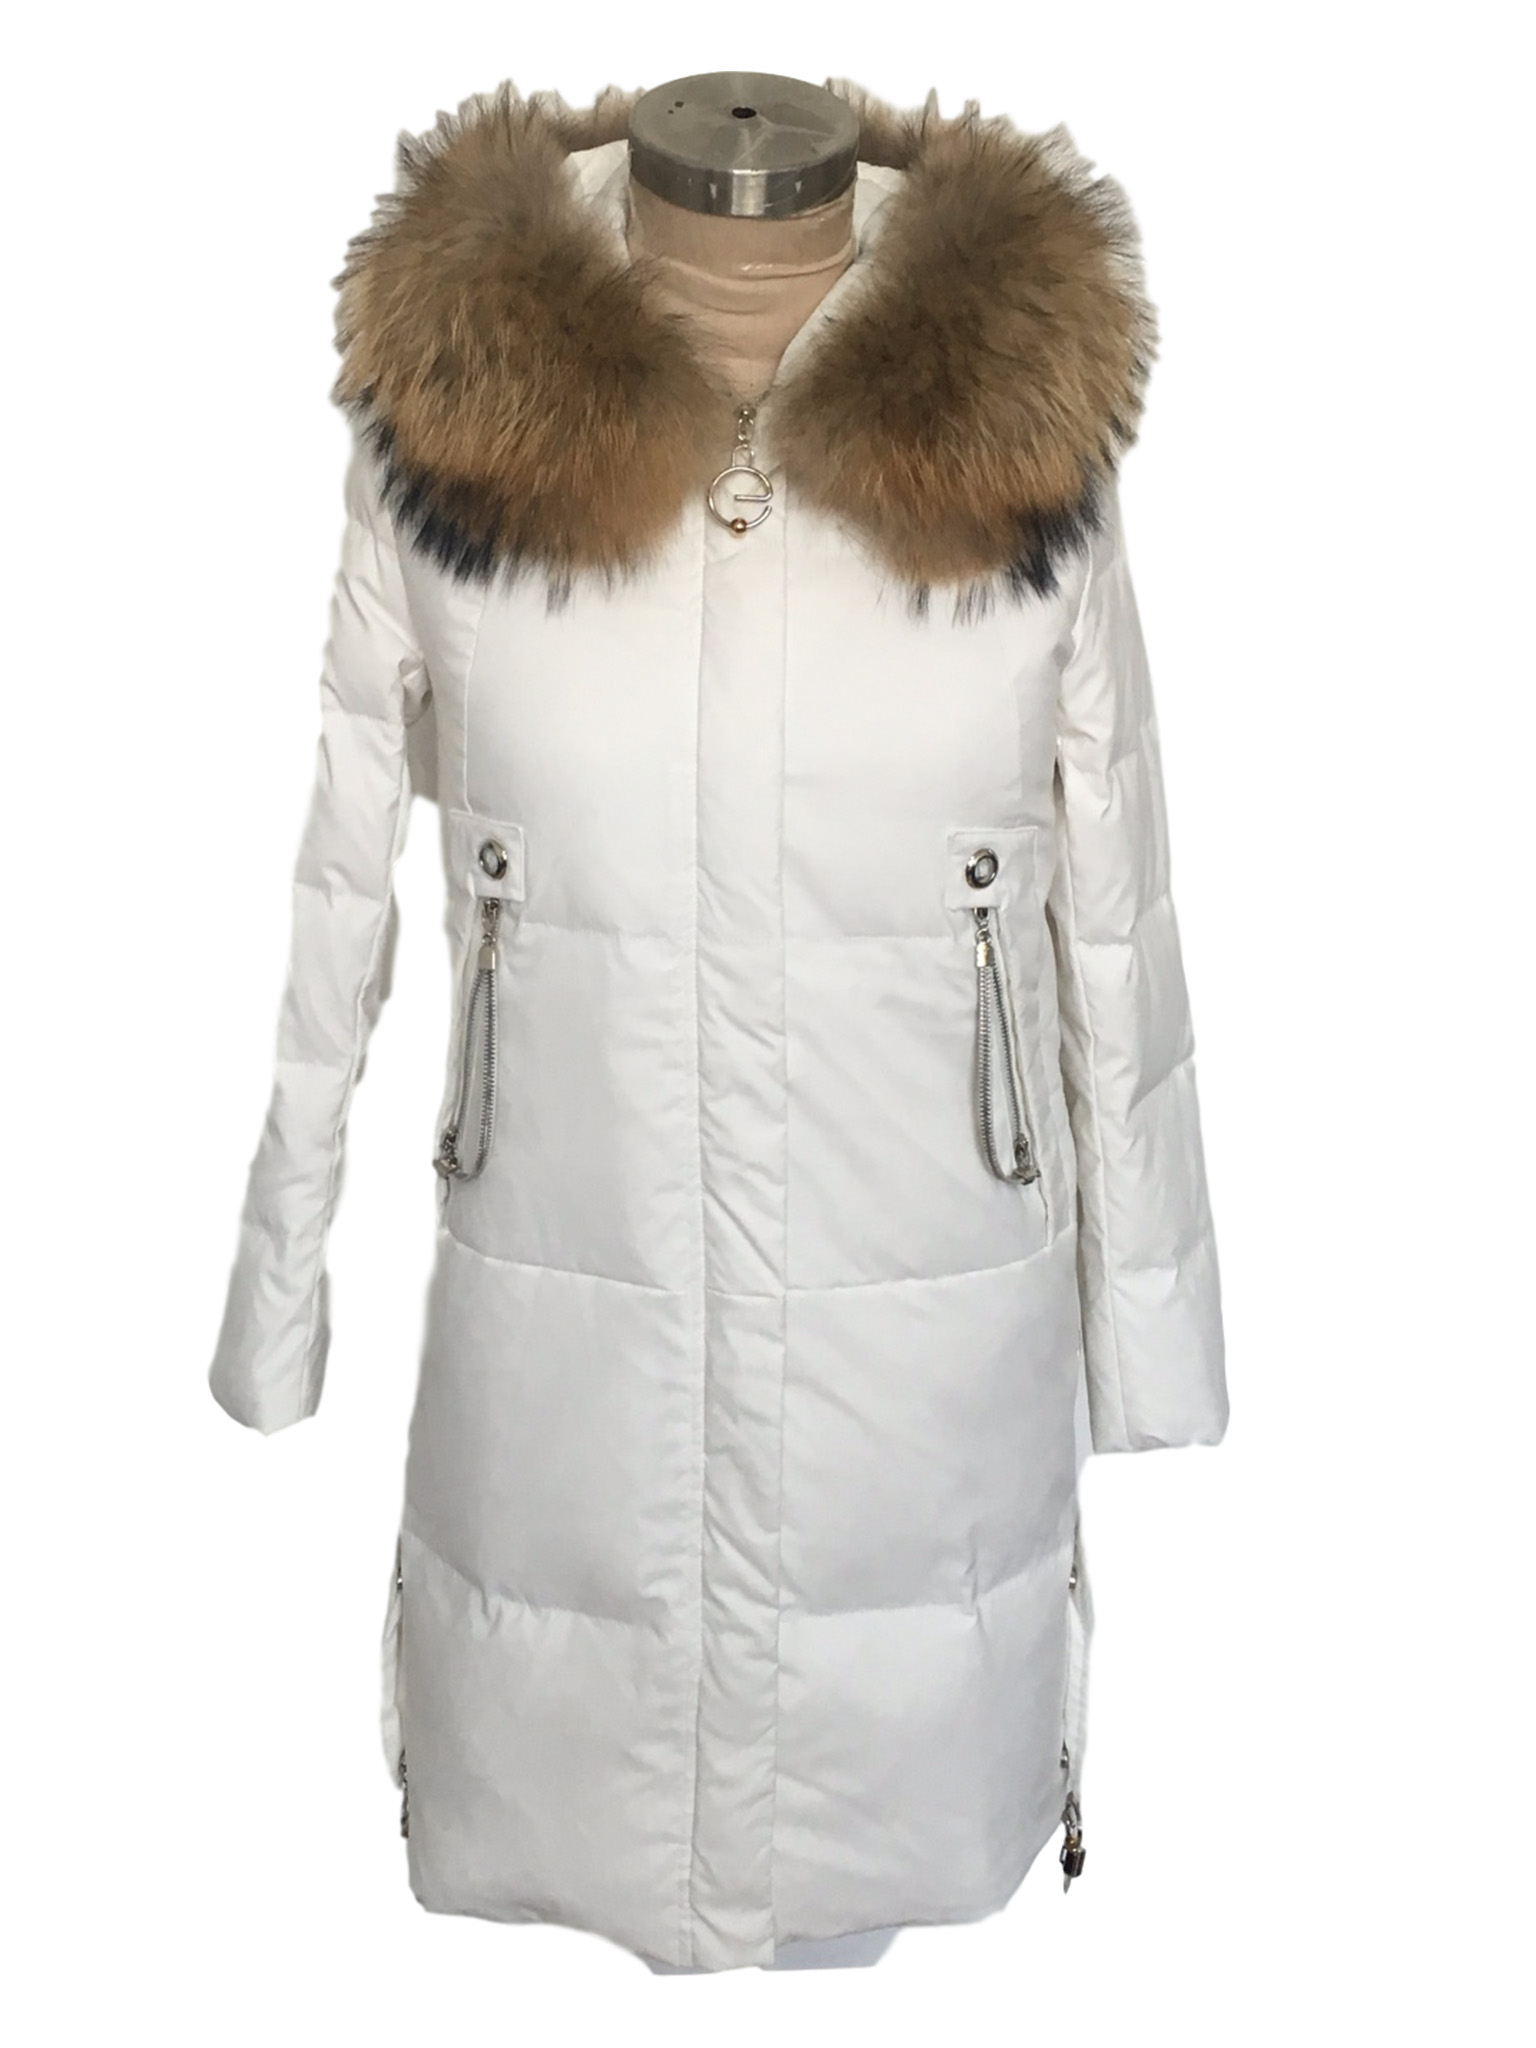 long down jacket women,down jacket women,mens down jacket,down coat women,Huarui export